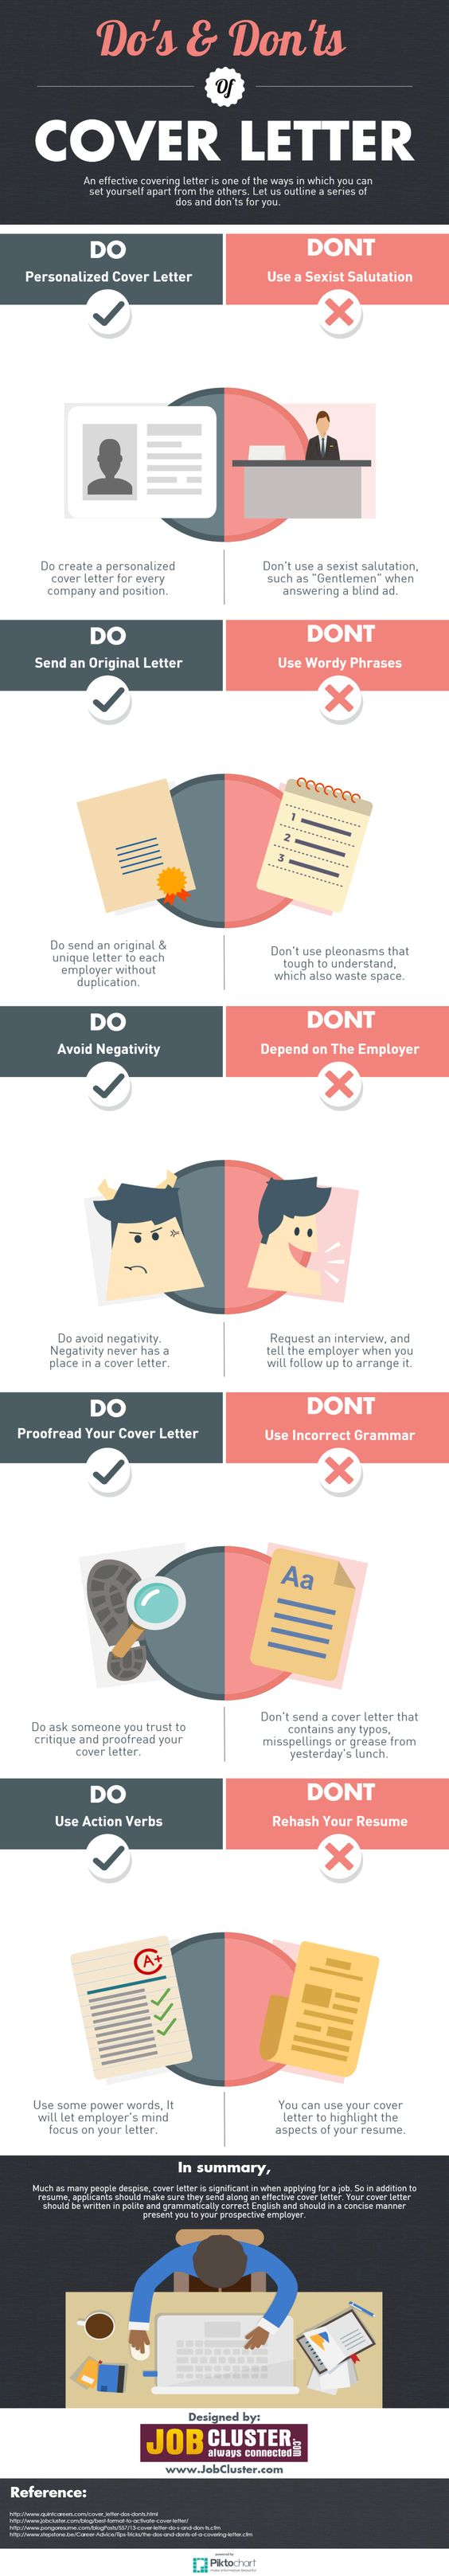 dos and donts of coverletter infographic careers get your dream job and we will help you travel the world for little to no money httprecru. Resume Example. Resume CV Cover Letter